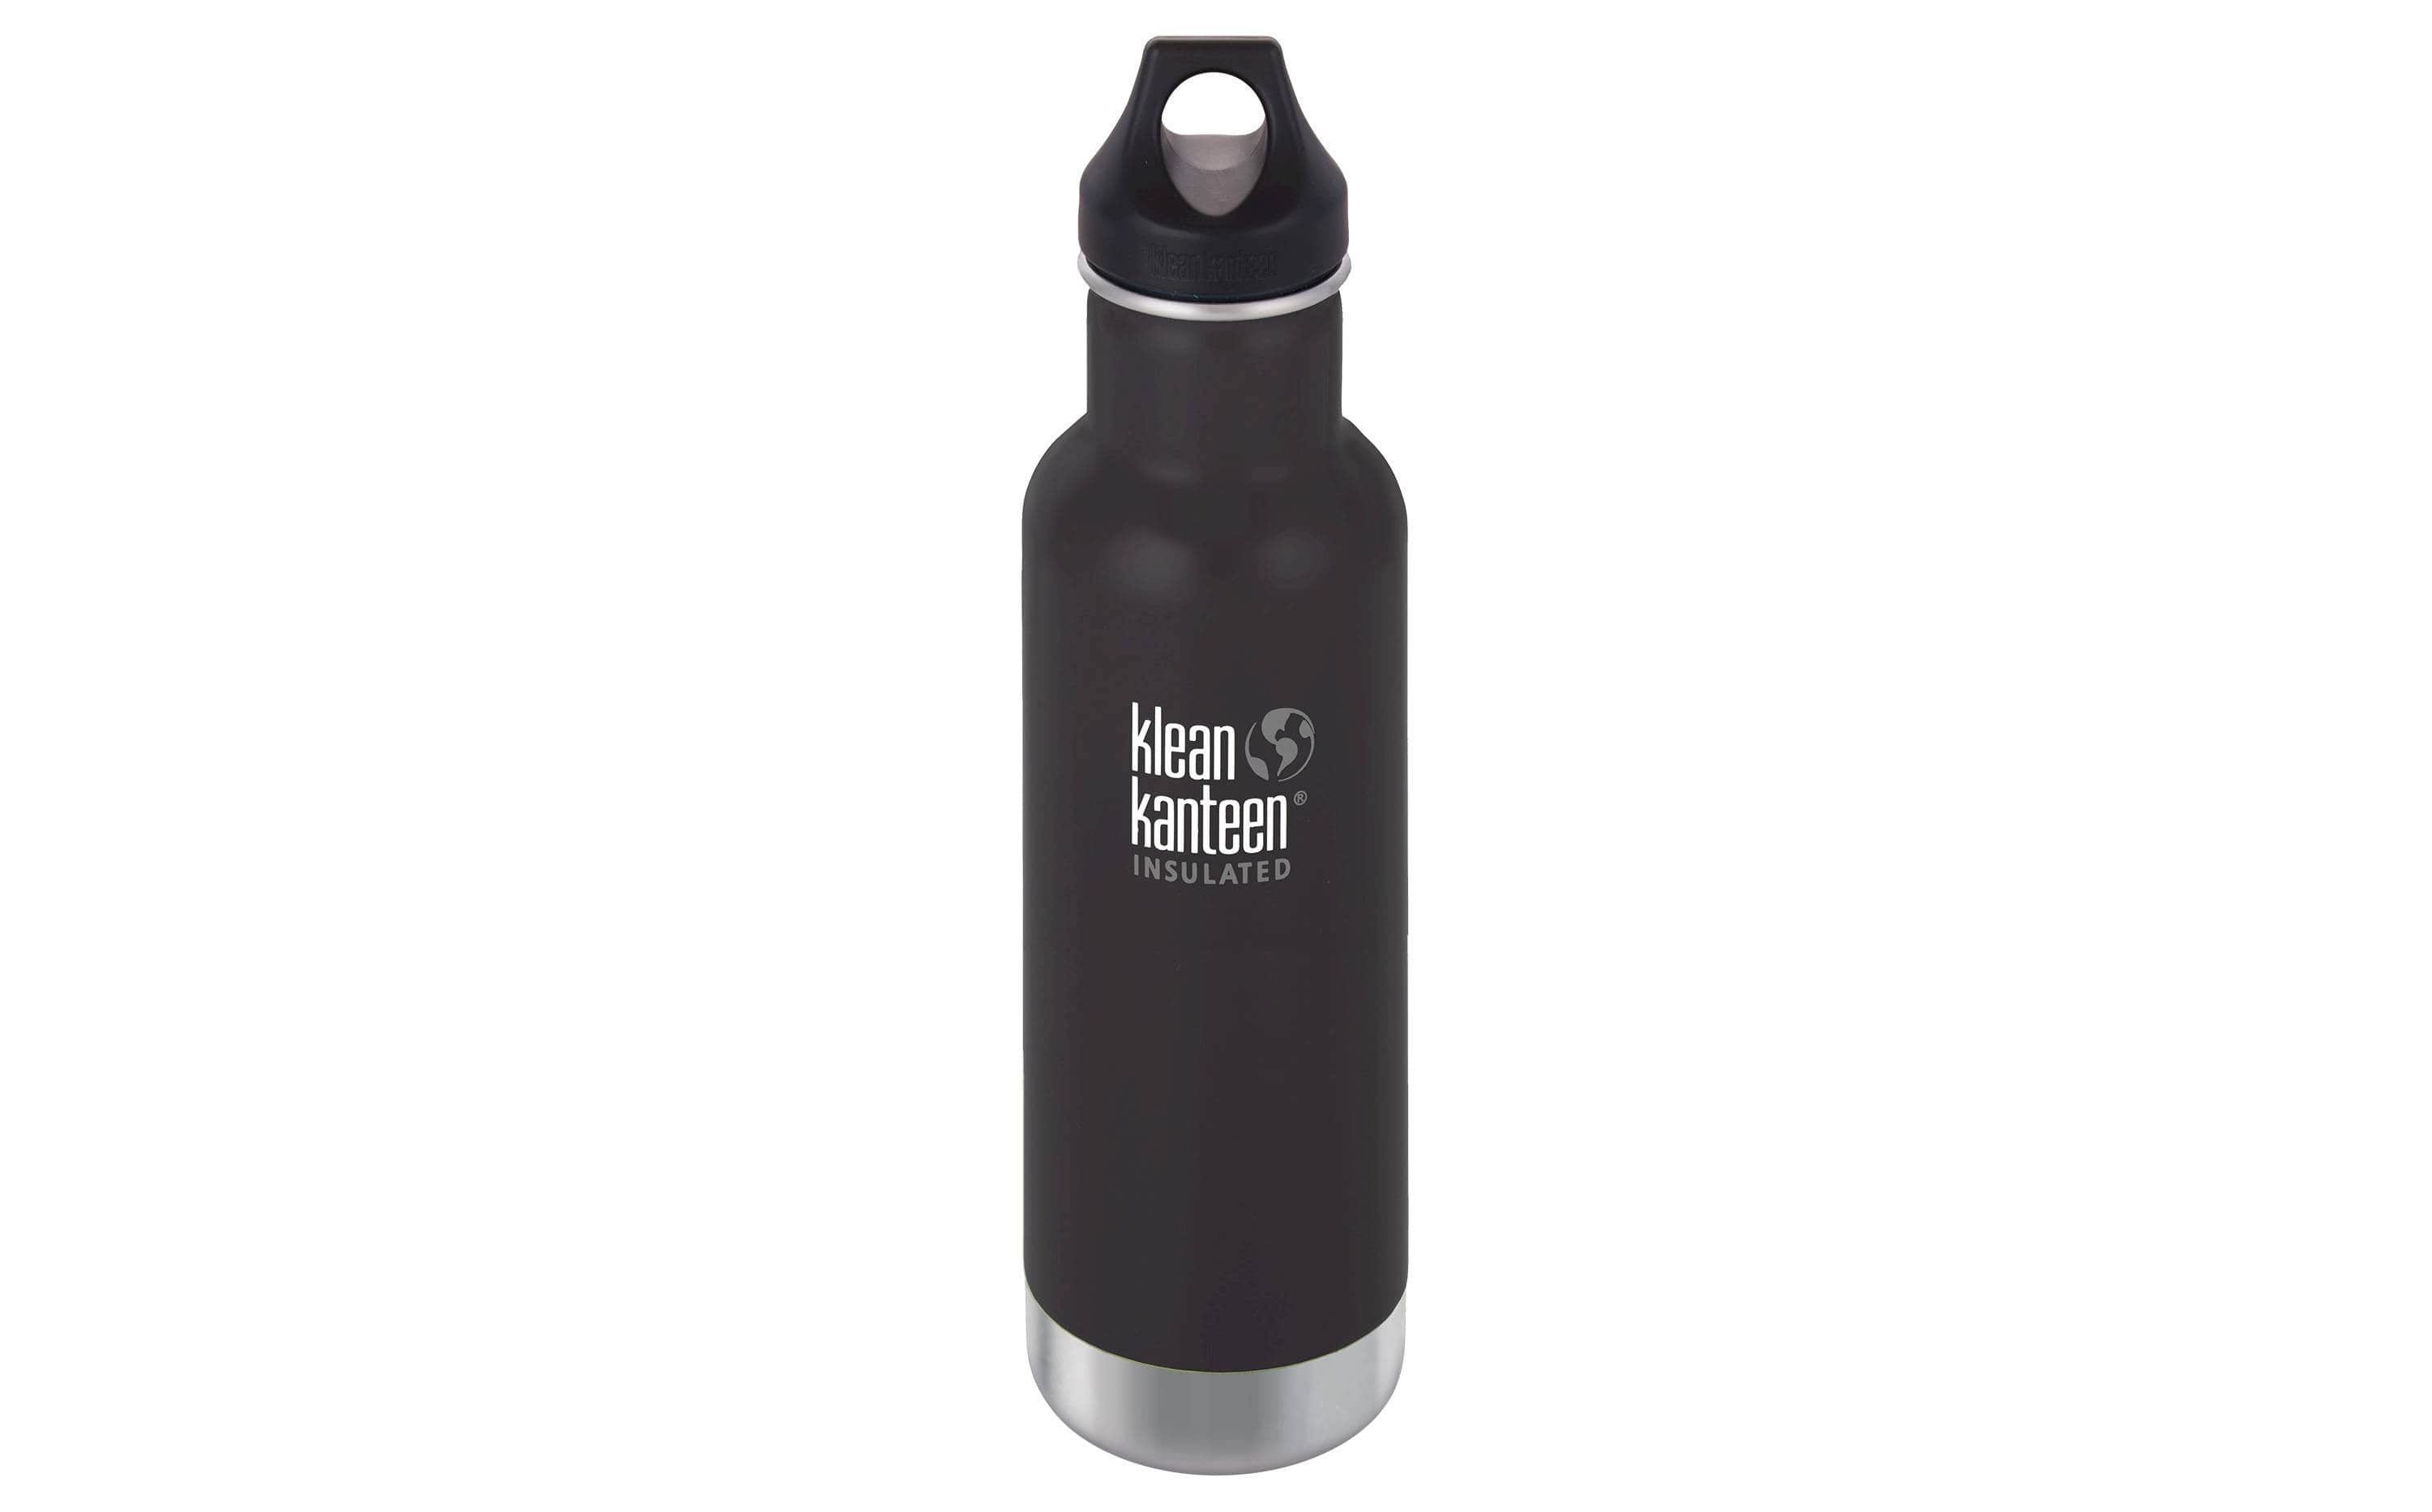 Klean Kanteen Insulated Classic Stainless Steel Bottle - 20oz $12.39 at Target